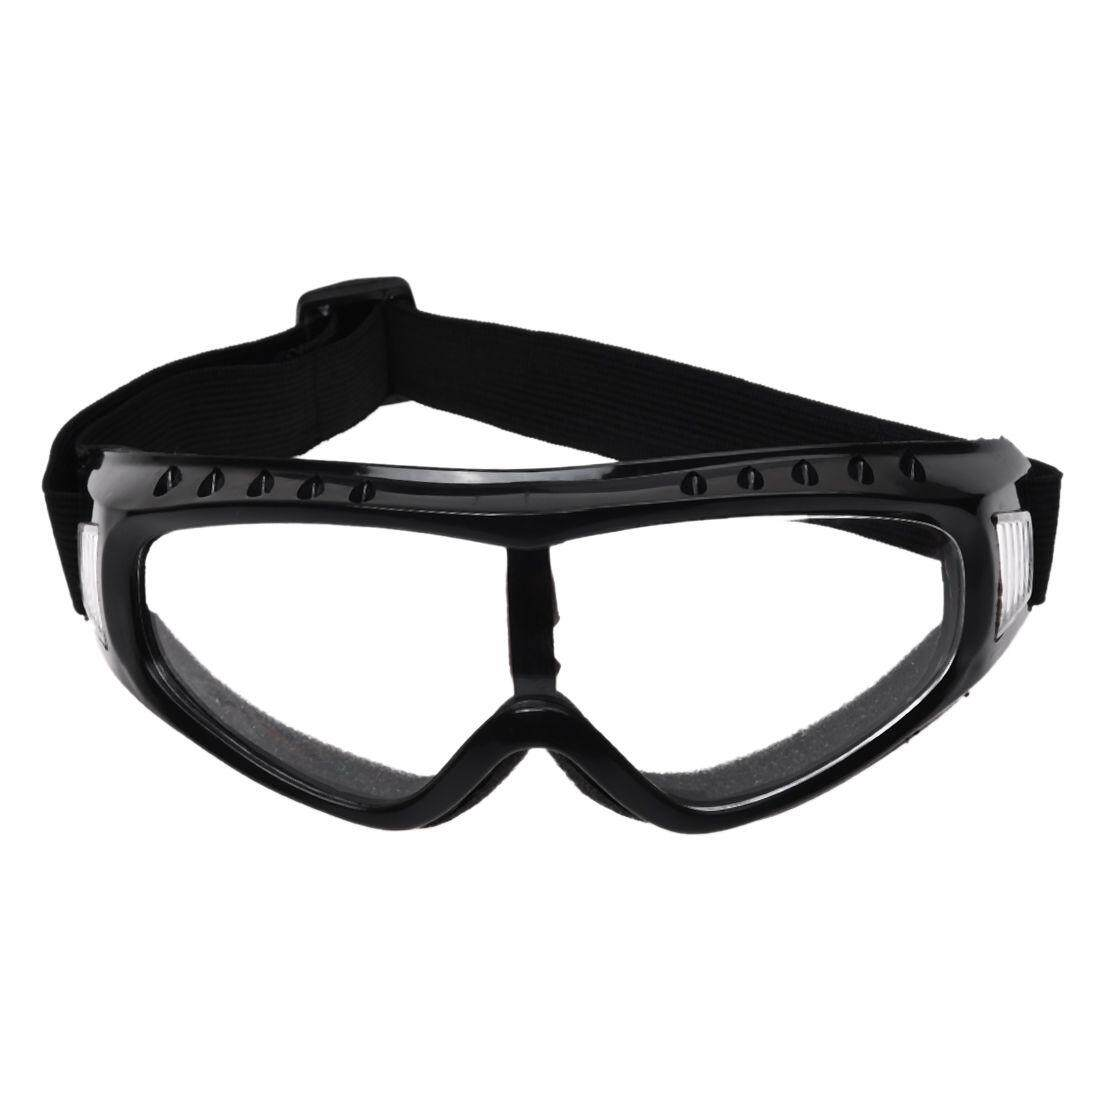 Transparent Coated Safety Skiing black-rimmed Goggles Outdoor Sport Dustproof Sunglass Eye Glasses - intl